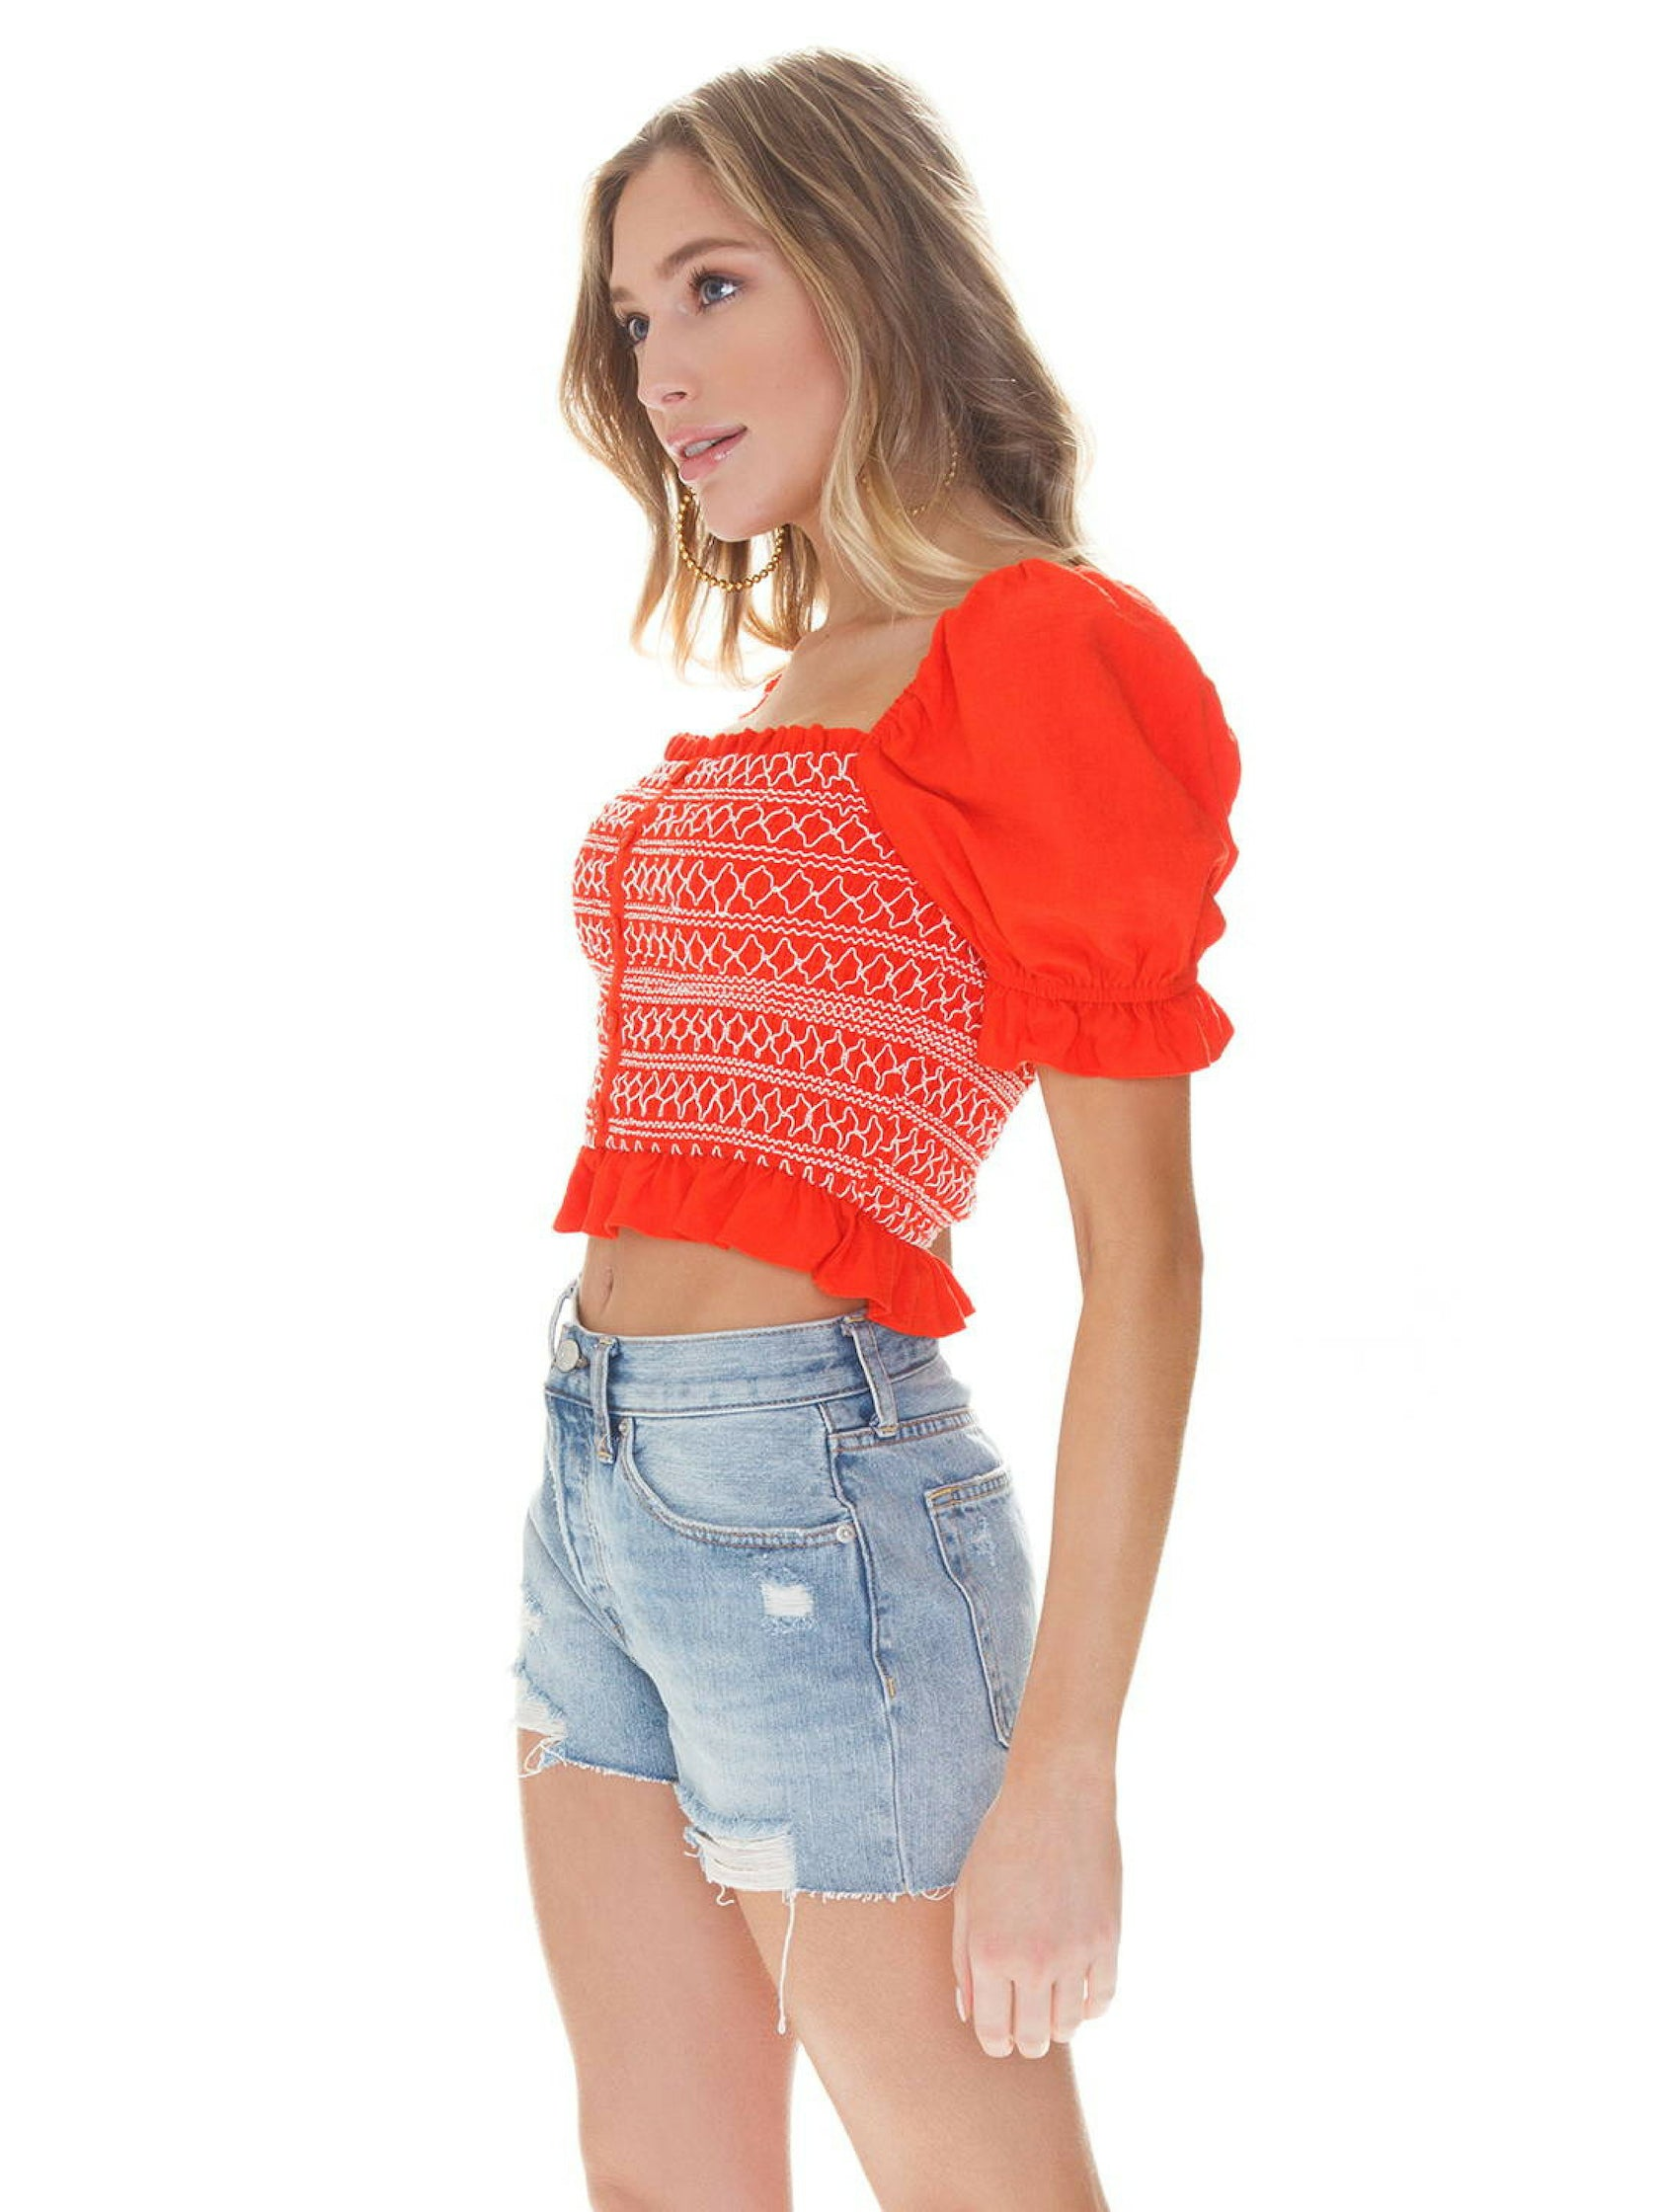 Women wearing a top rental from LOST + WANDER called Bloody Mary Smocked Top